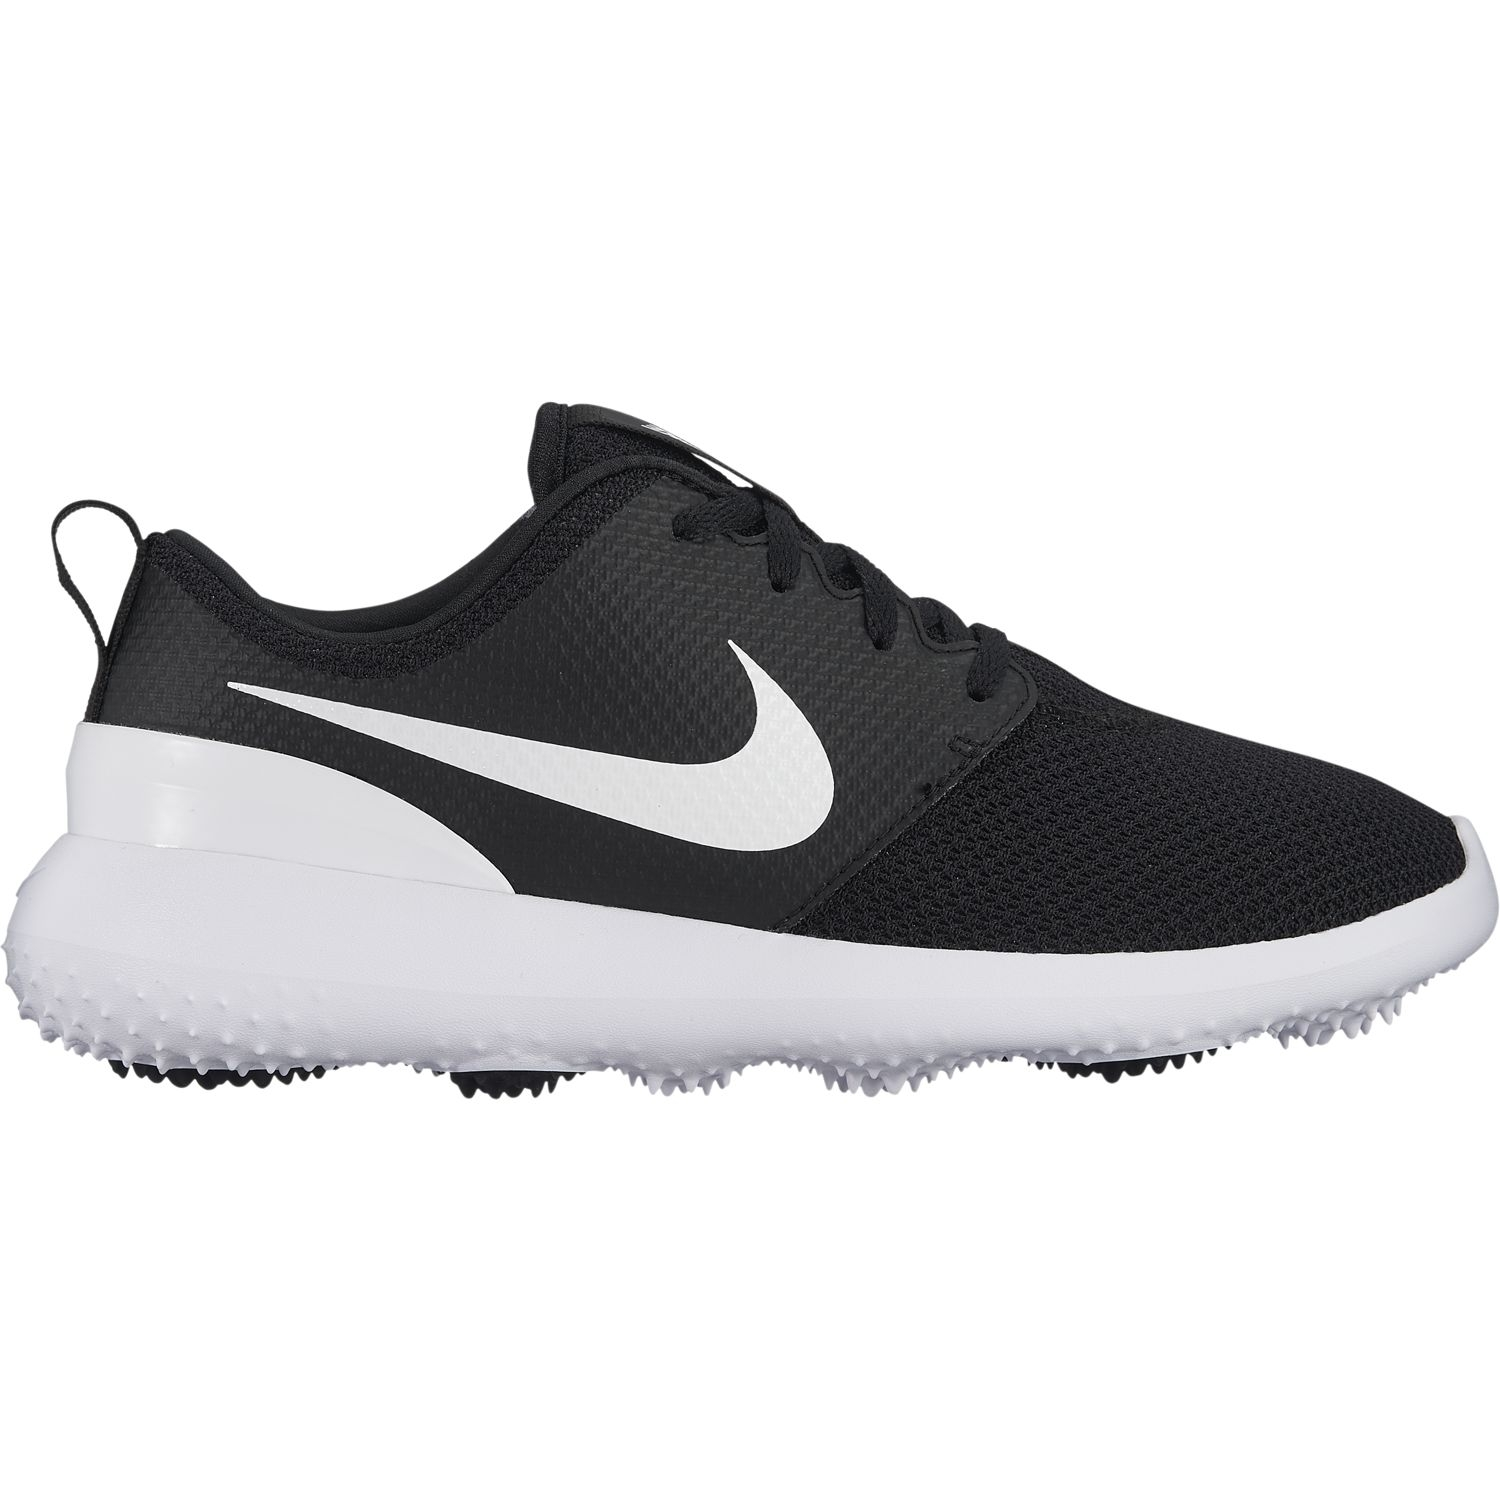 Nike Womens Roshe G Golf Shoe - Black